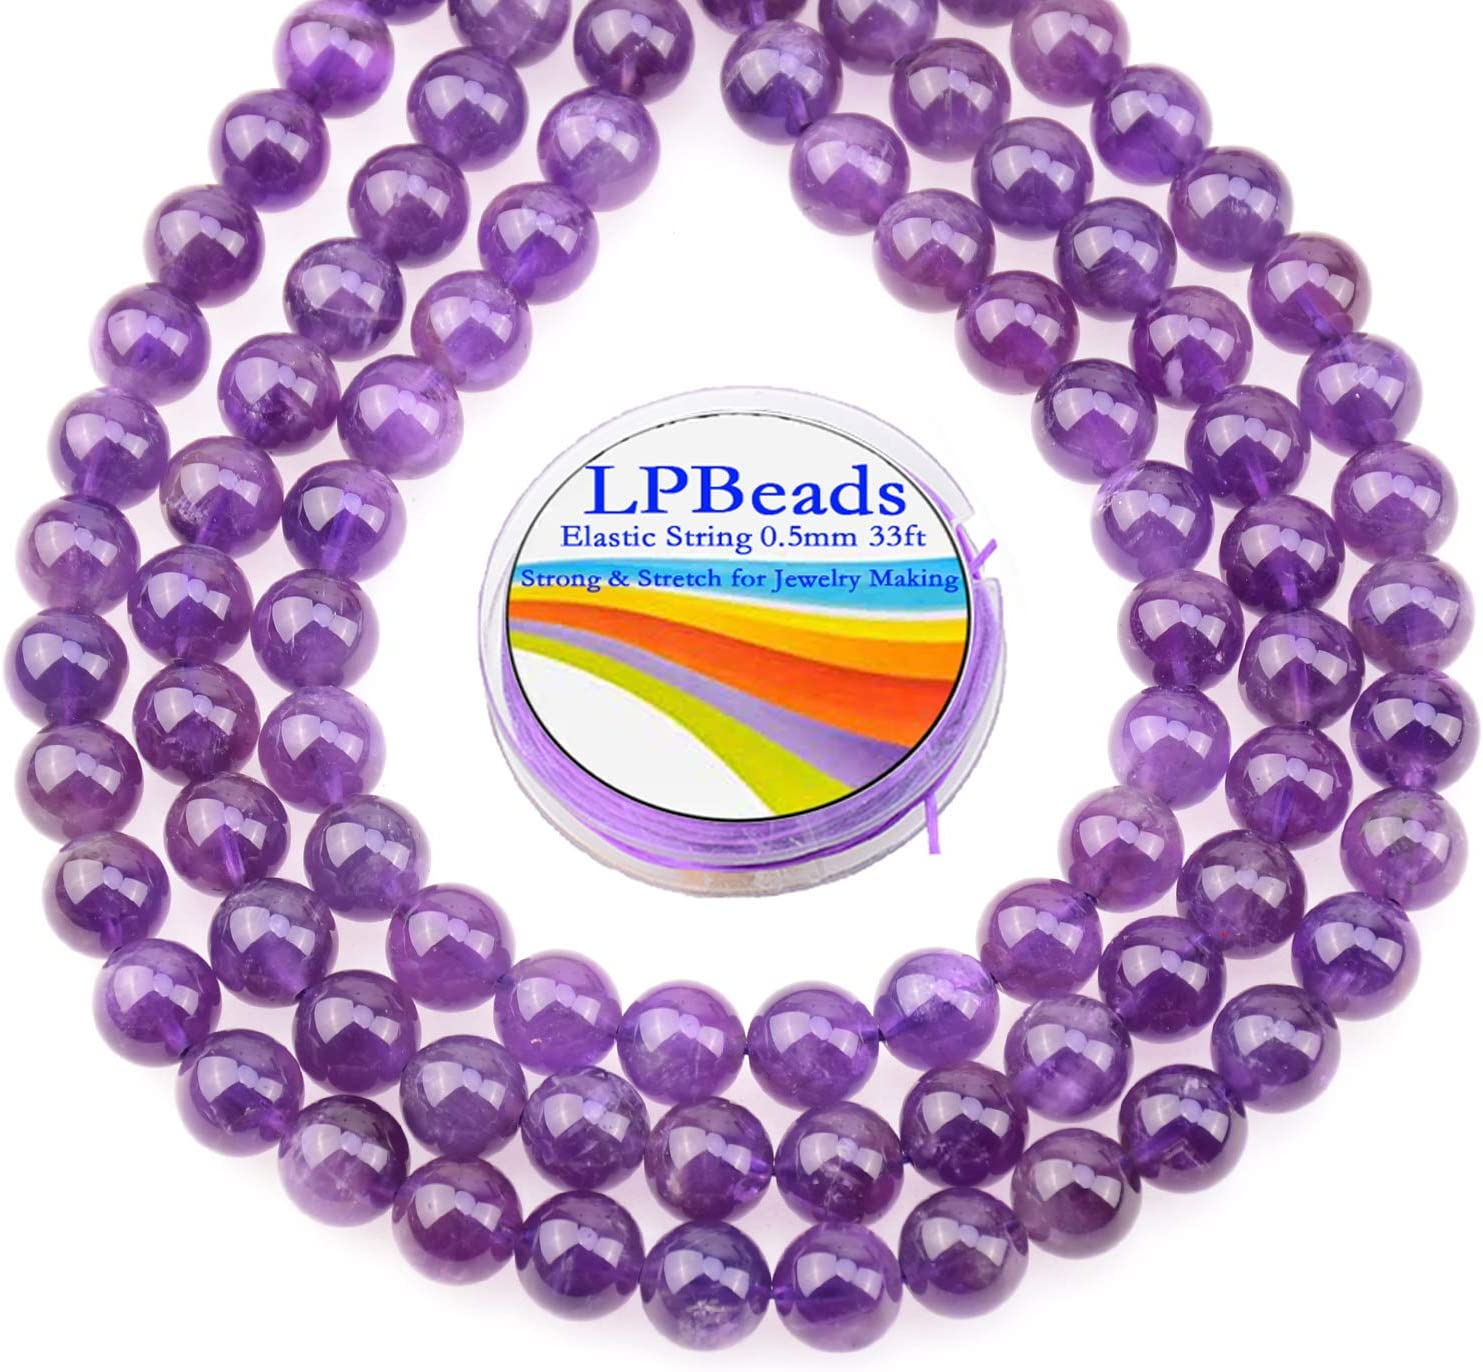 LPBeads Fort Worth Mall 80Pcs Polished 10mm Round Natural Loos Luxury Gemstone Amethyst